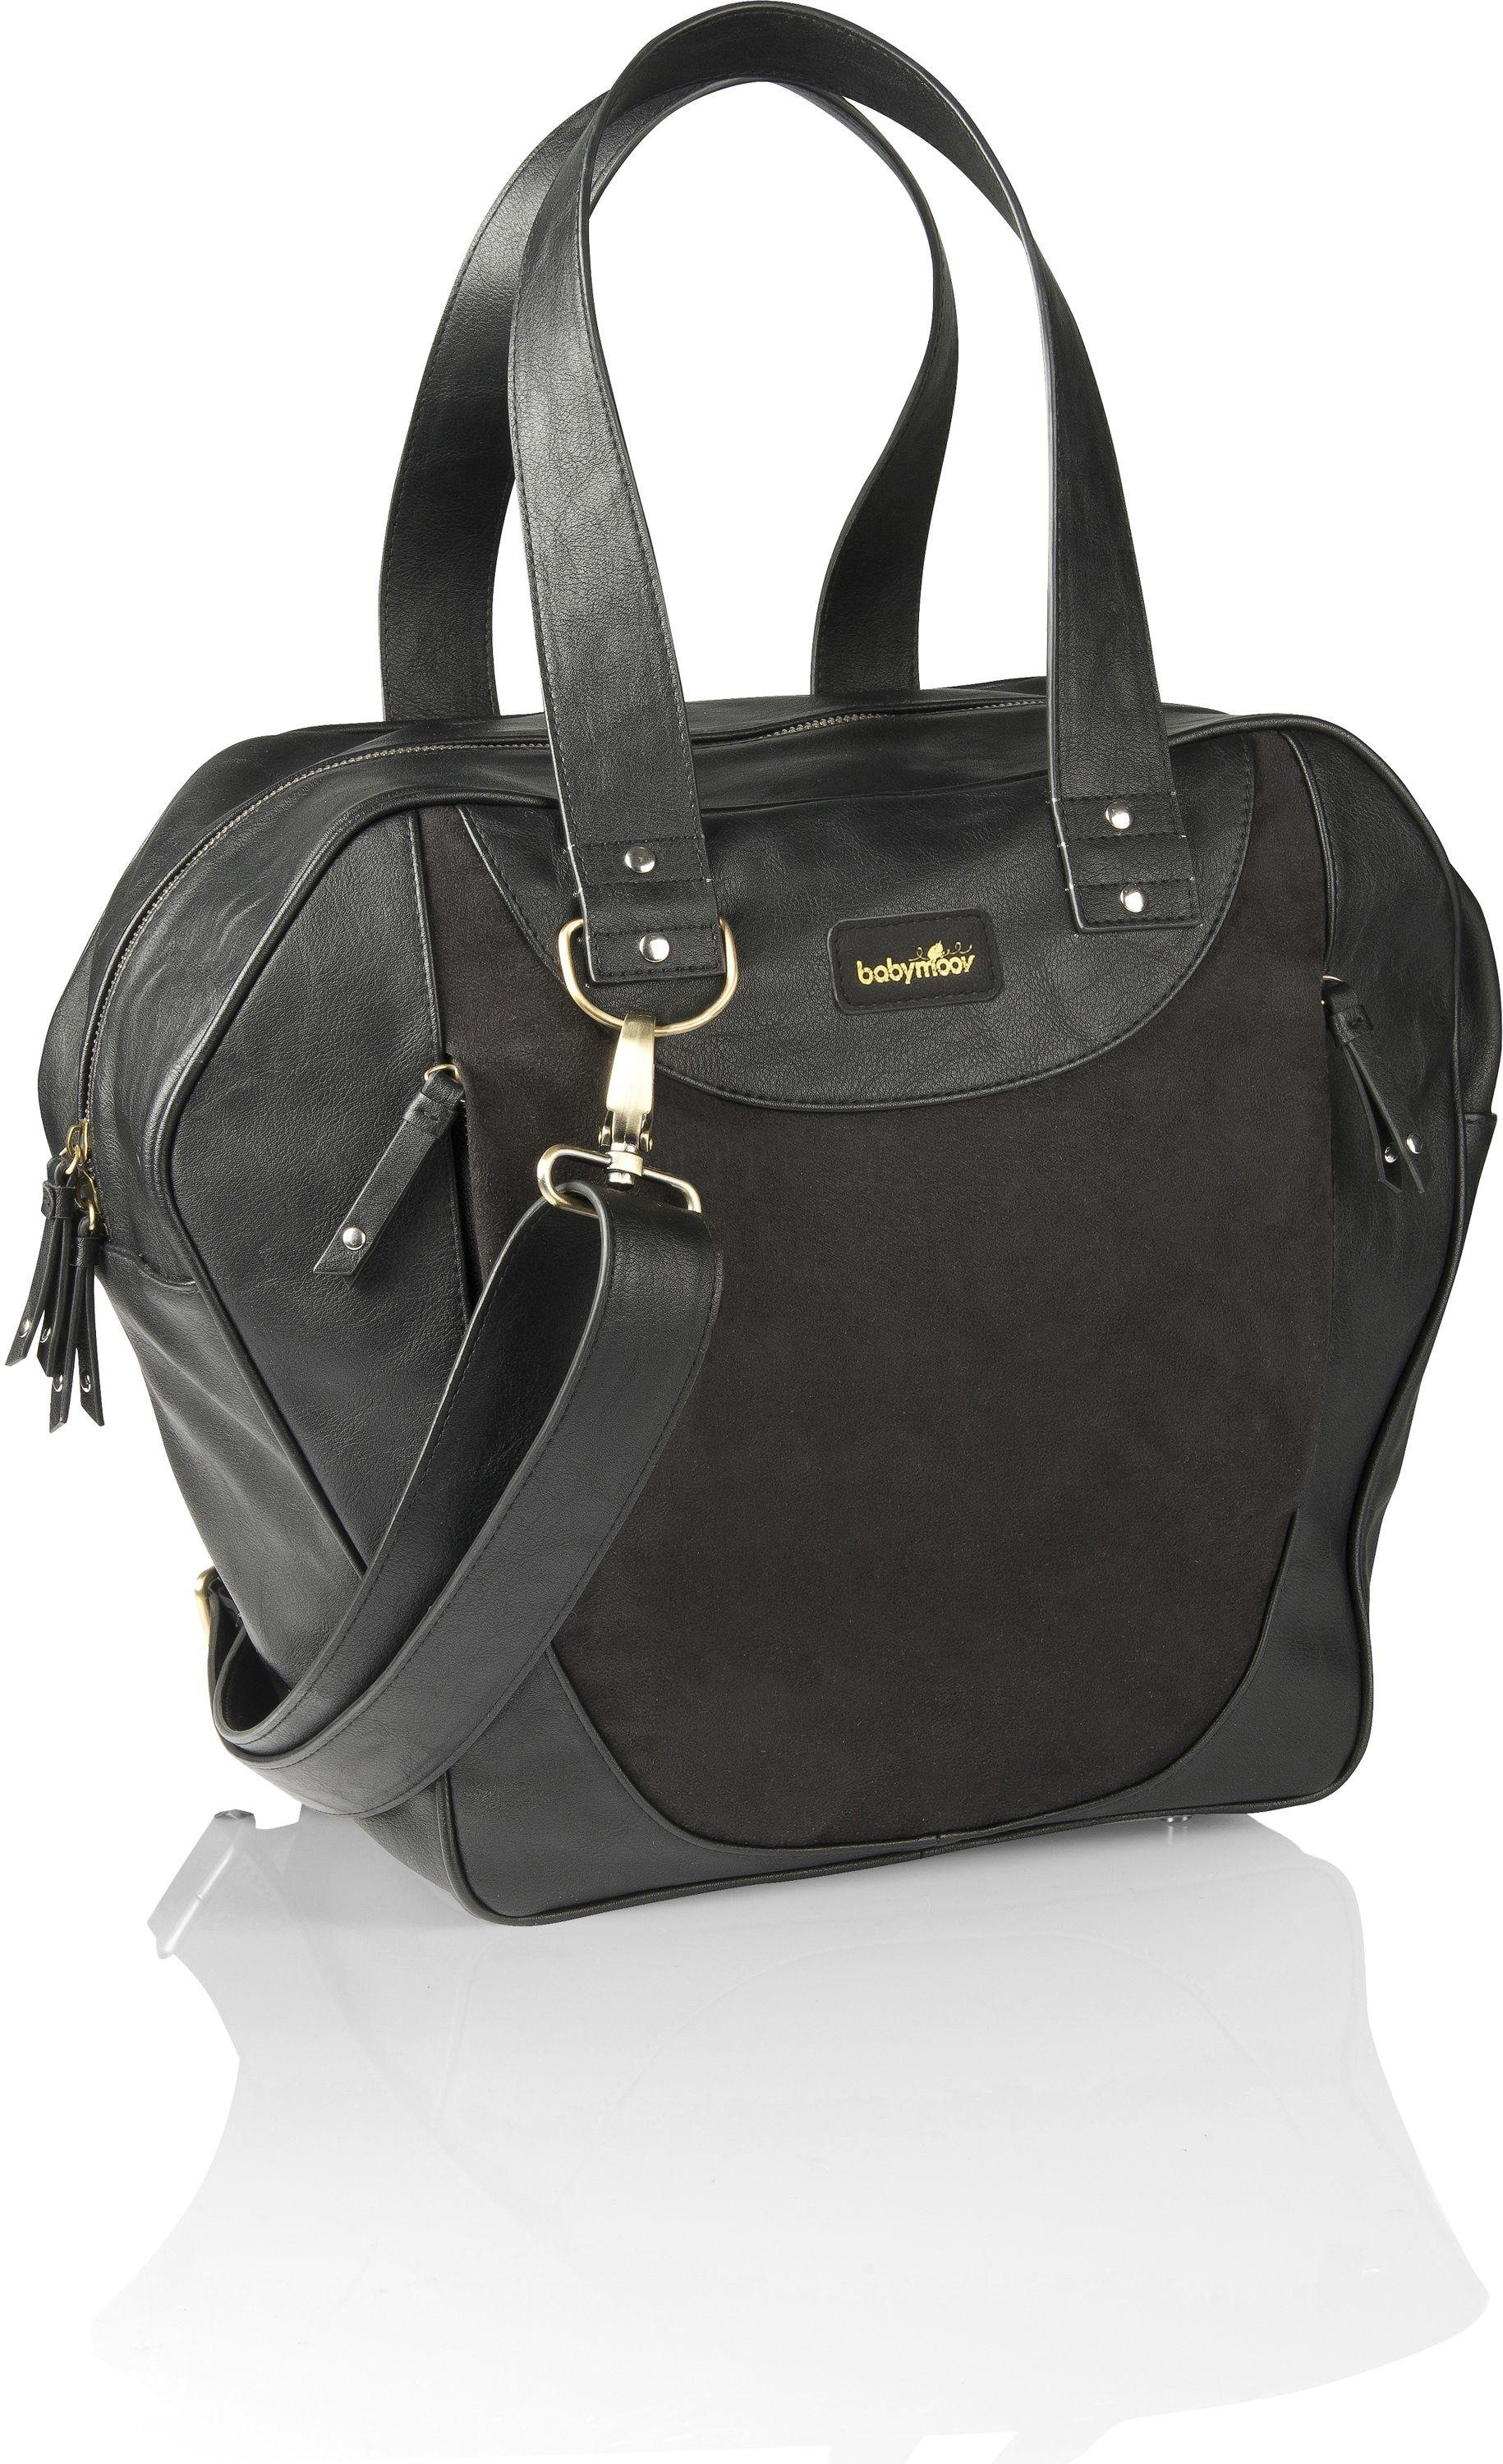 Image of Babymoov - City - Changing Bag - Black